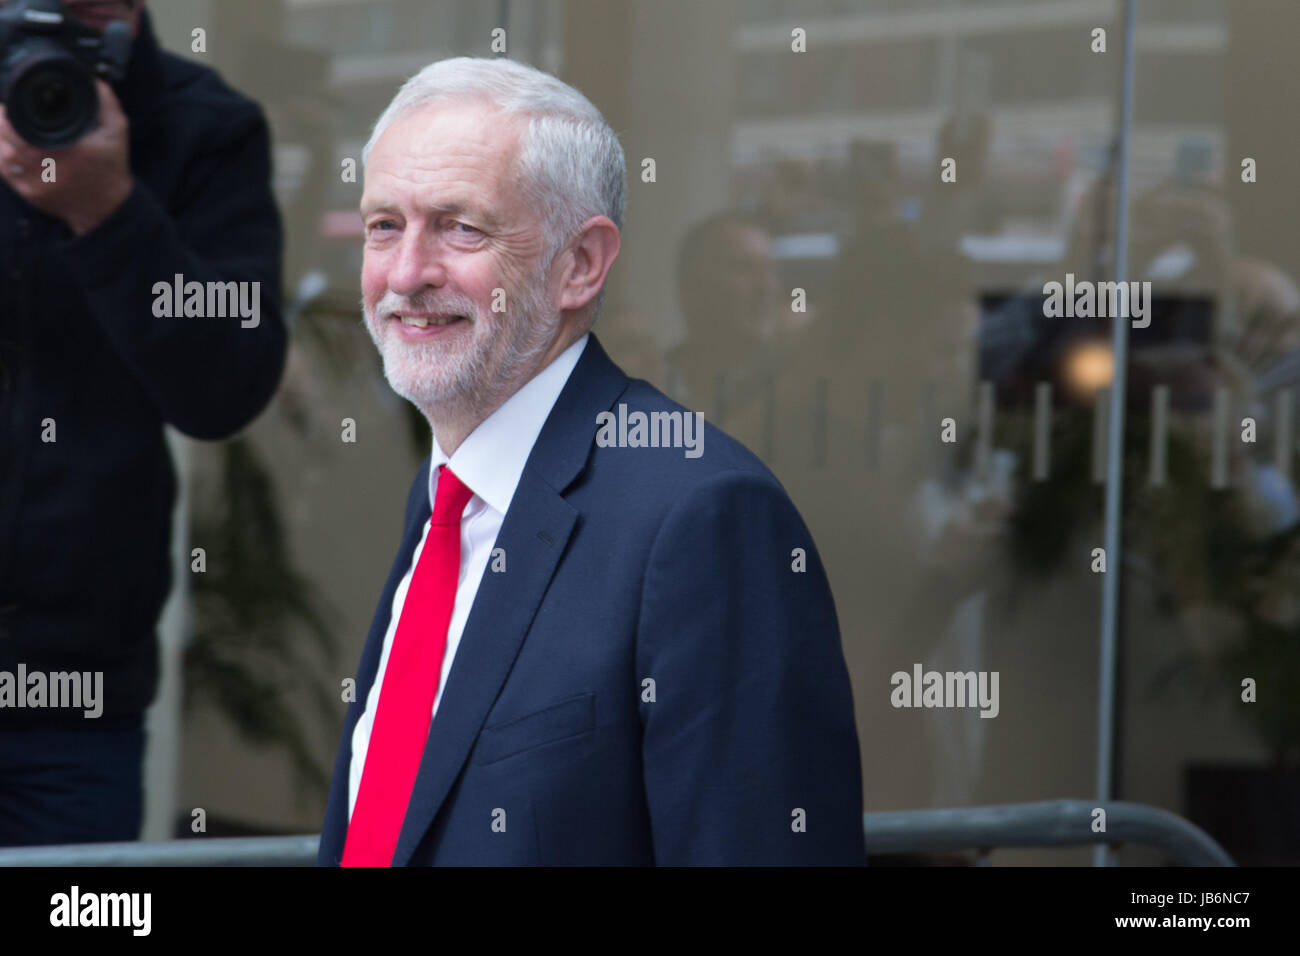 London, UK. 9th June, 2017. Labour Leader Jeremy Corbyn leaves Labour Headquarters on June 9, 2017 in London, England. - Stock Image